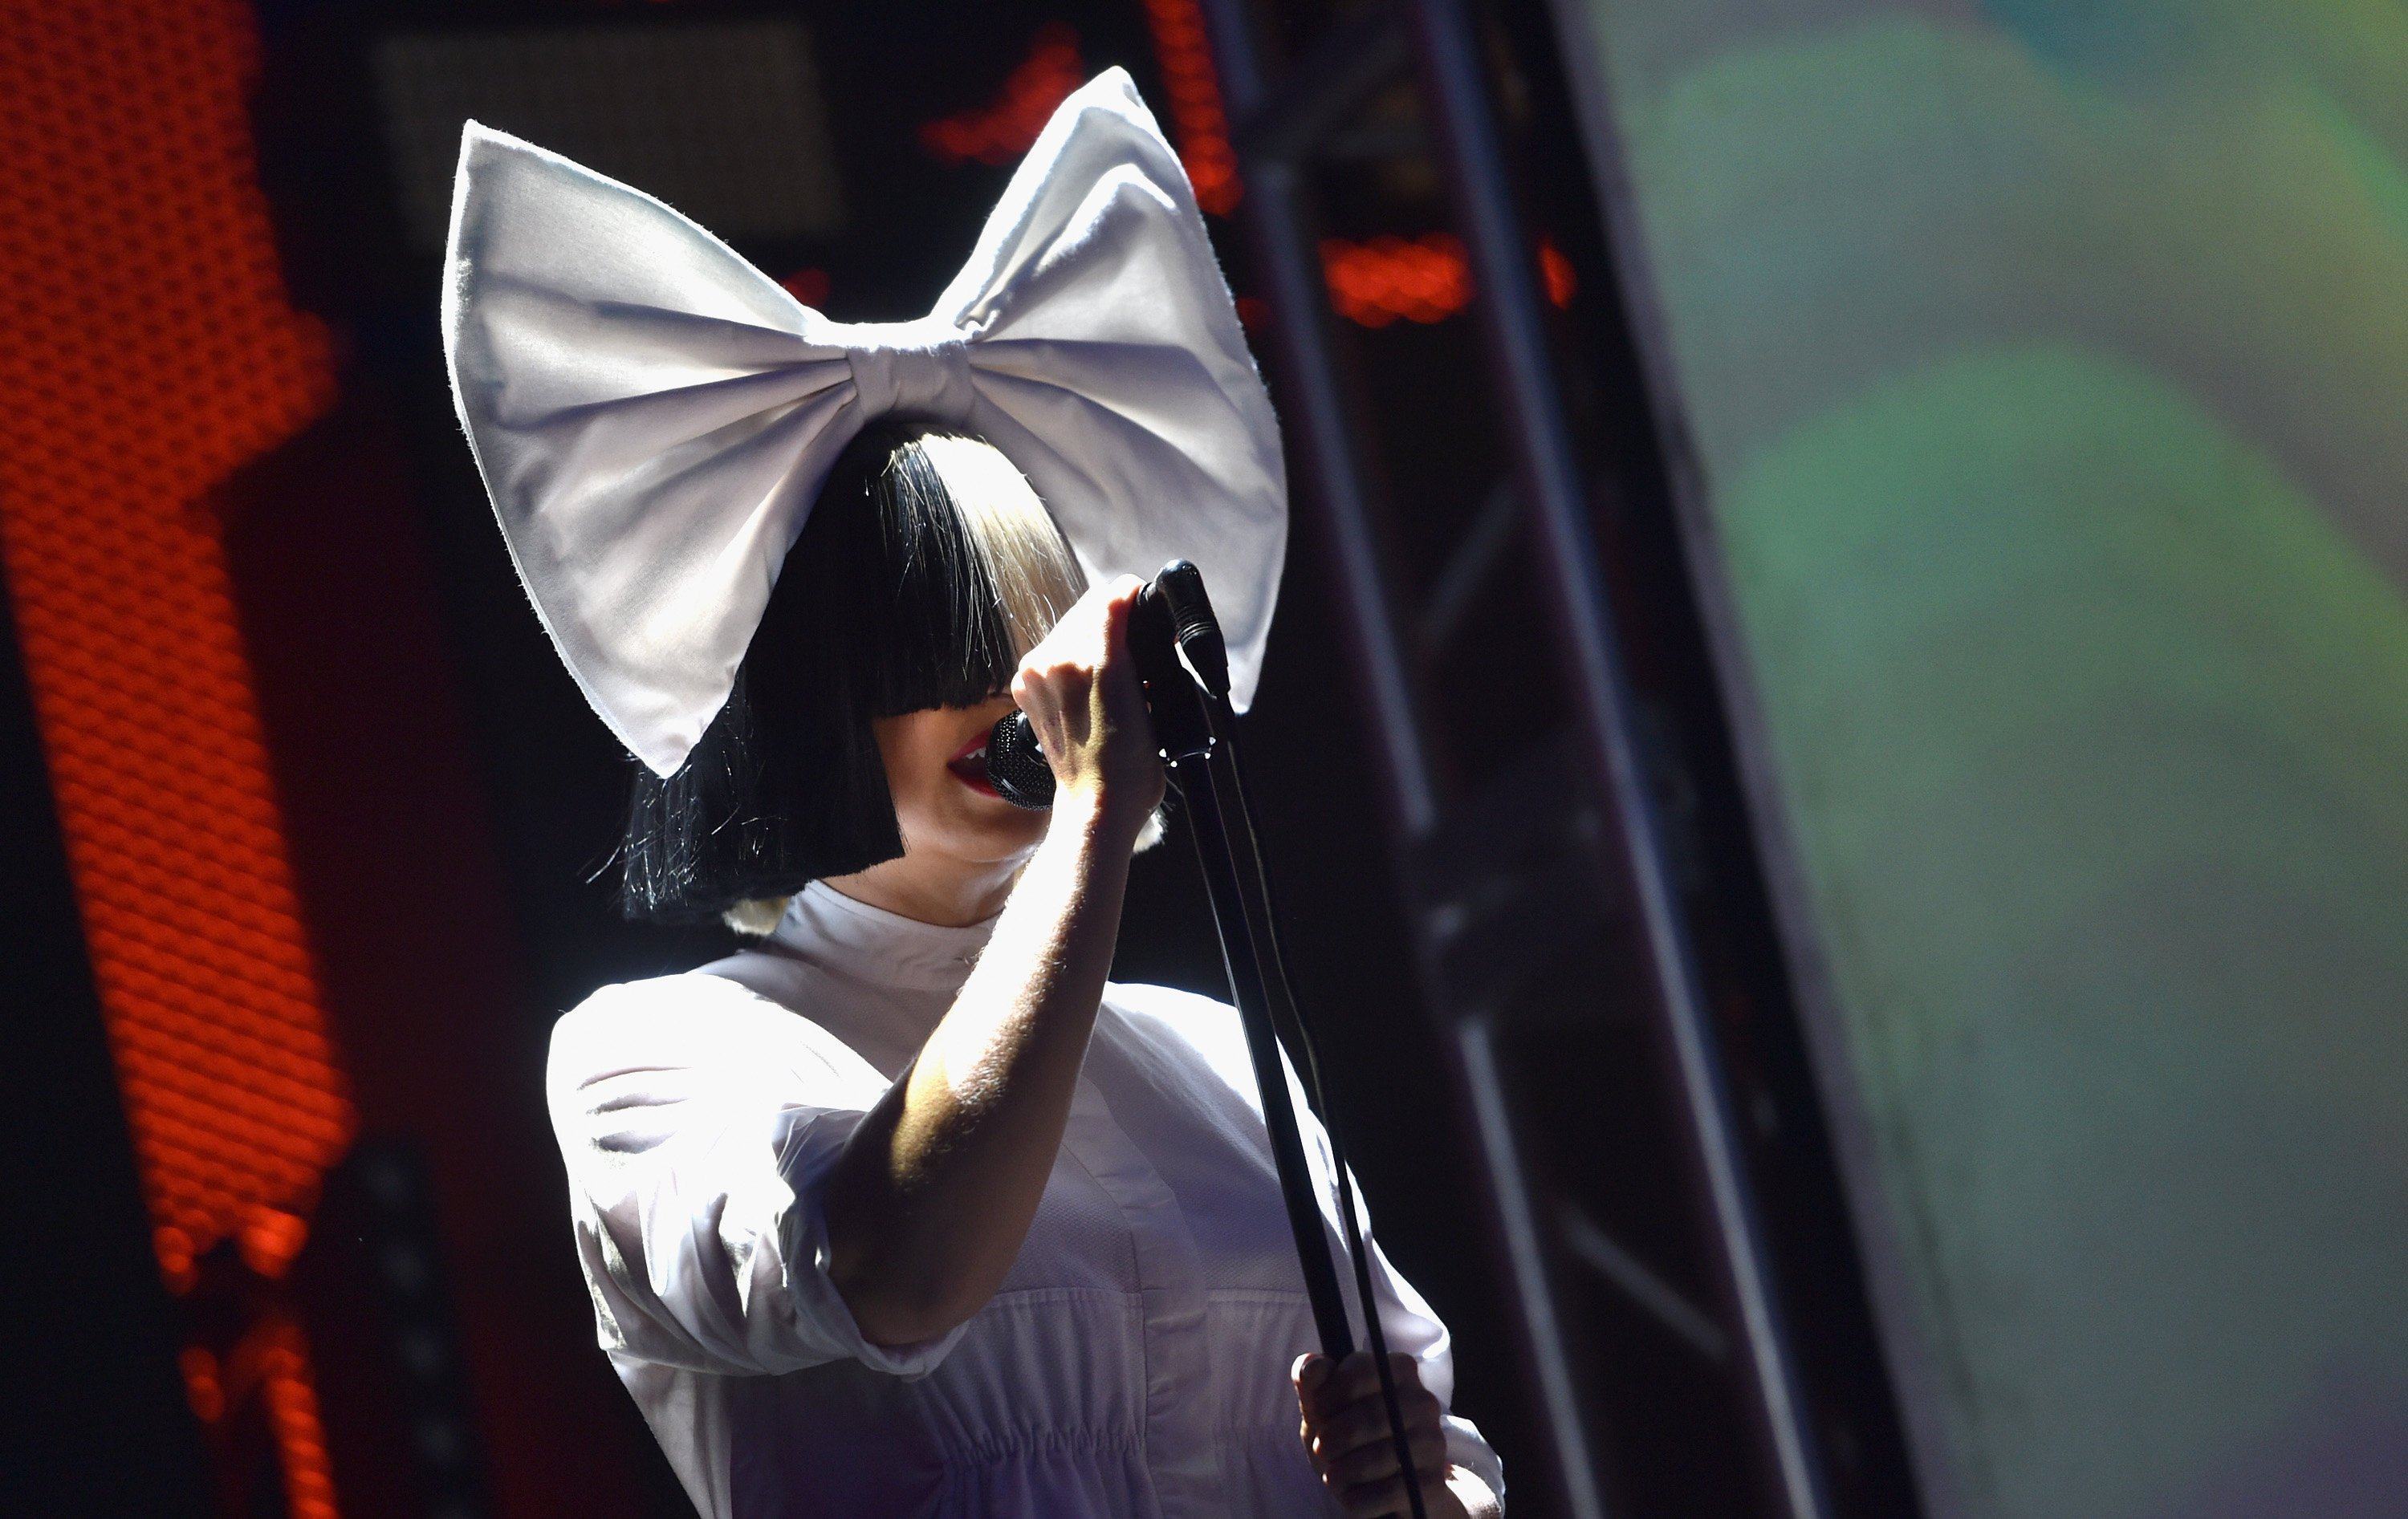 Sia performs onstage at the 2016 iHeartRadio Music Festival at T-Mobile Arena on September 23, 2016. | Photo: Getty Images